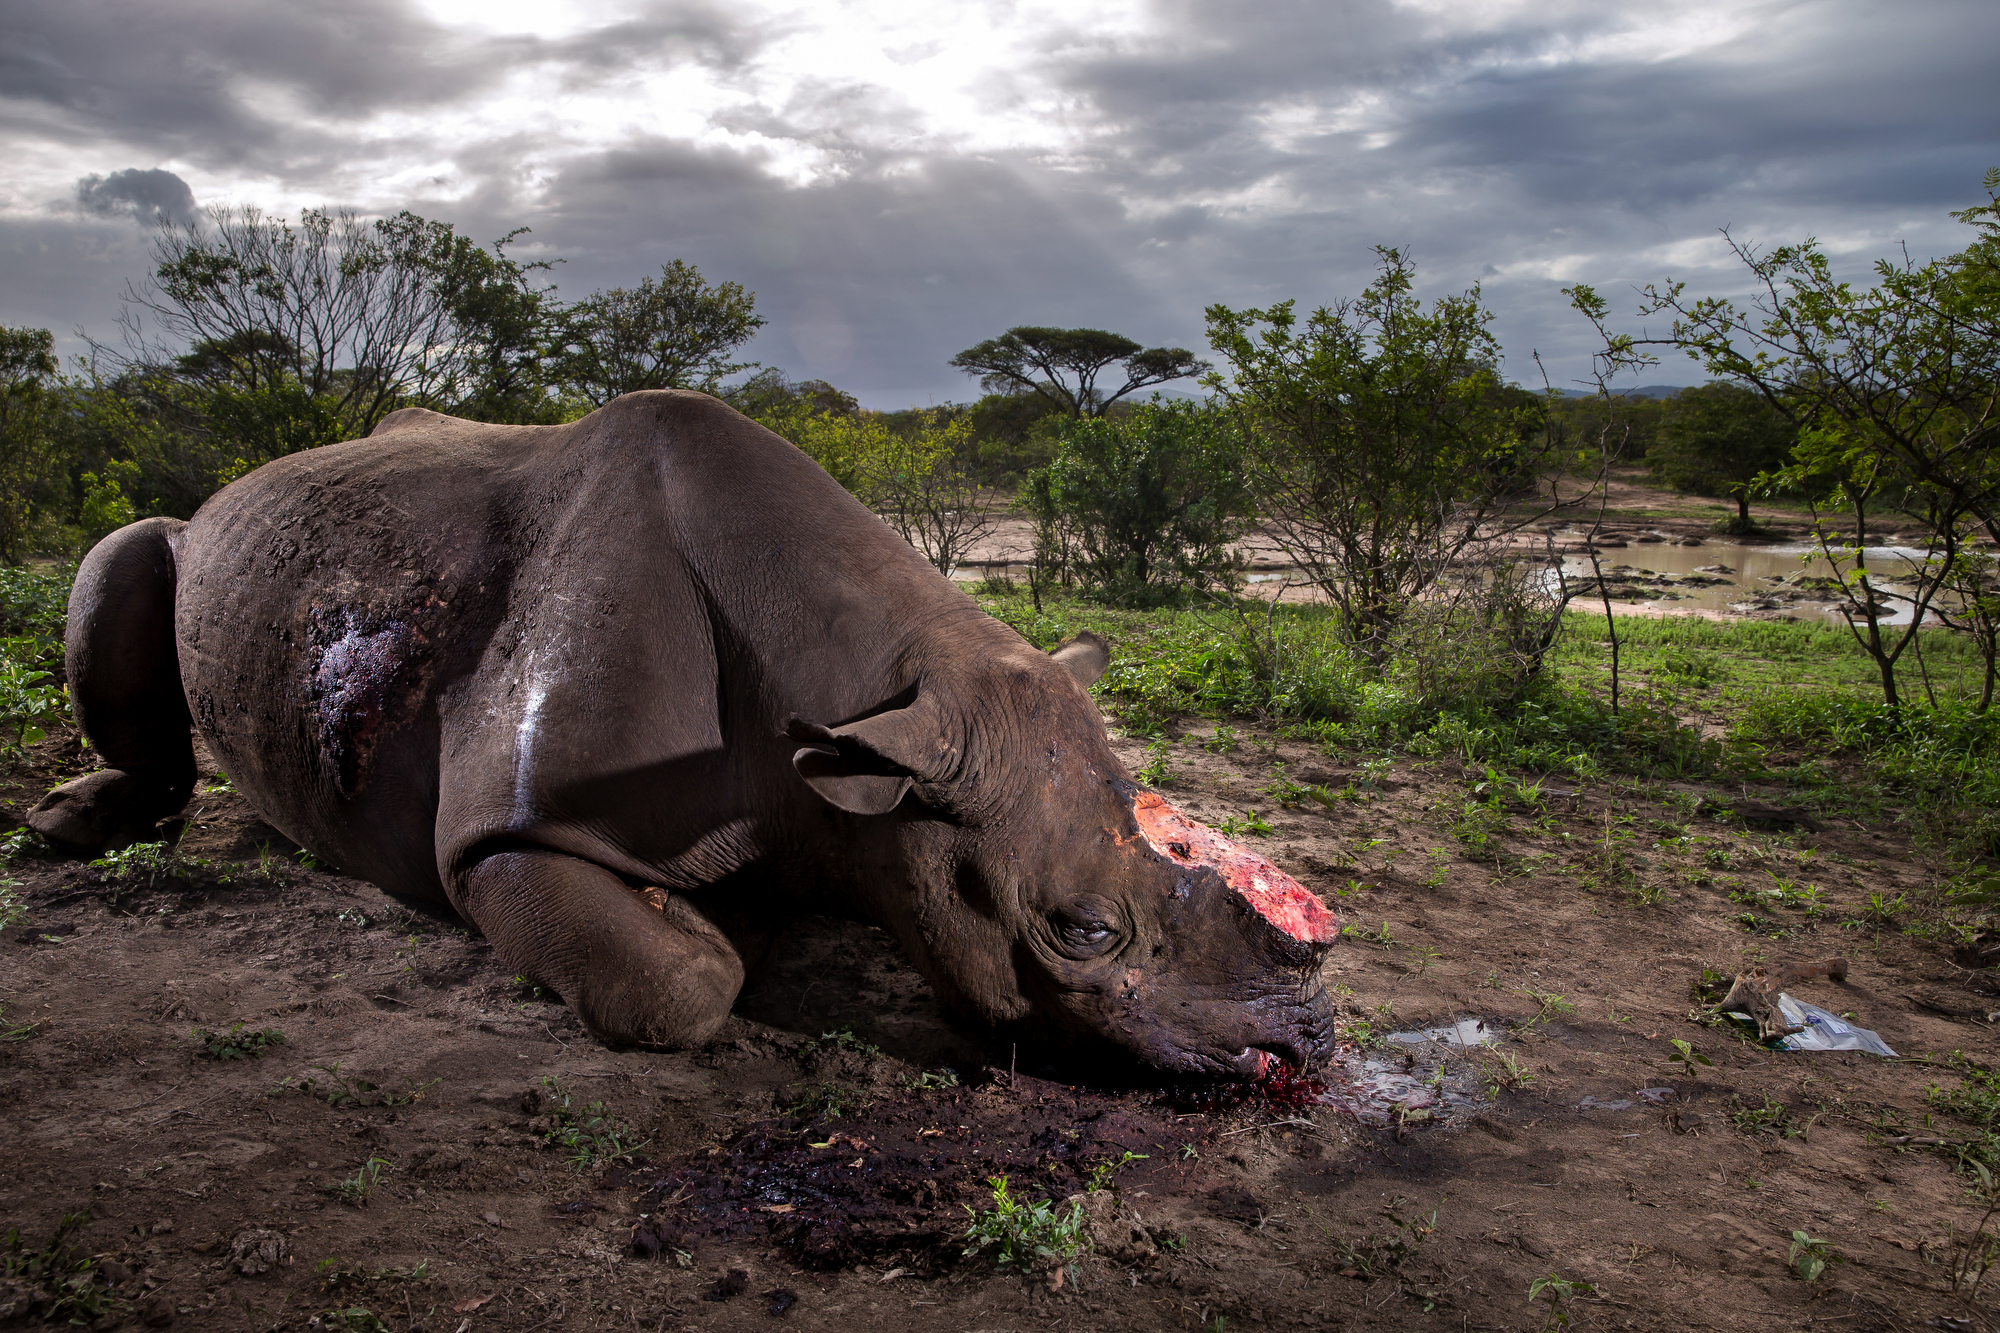 Brent Stirton, Getty Images photographer, The Deadly Rhino Horn Trade, Hluhluwe Umfolozi Game Reserve, Kwazulu Natal, South Africa, May 17, 2016.  A Black Rhino Bull is seen dead, poached for its horns less than 24 hours earlier at Hluhluwe Umfolozi Game Reserve, South Africa. It is suspected that the killers came from a local community approximately 5 kilometers away, entering the park illegally, shooting the rhino at a water hole with a high-powered, silenced hunting rifle. An autopsy and postmortem carried out by members of the KZN Ezemvelo later revealed that the large calibre bullet went straight through this rhino, causing massive tissue damage. It was noted that he did not die immediately but ran a short distance, fell to his knees and a coup de grace shot was administered to the head from close range. Black Rhino are the most endangered rhino, HluHluwe Umfolozi is one of the last repositories for these animals, with less than 3000 left in the wild today. (Photo by Brent Stirton/Getty Images Reportage)